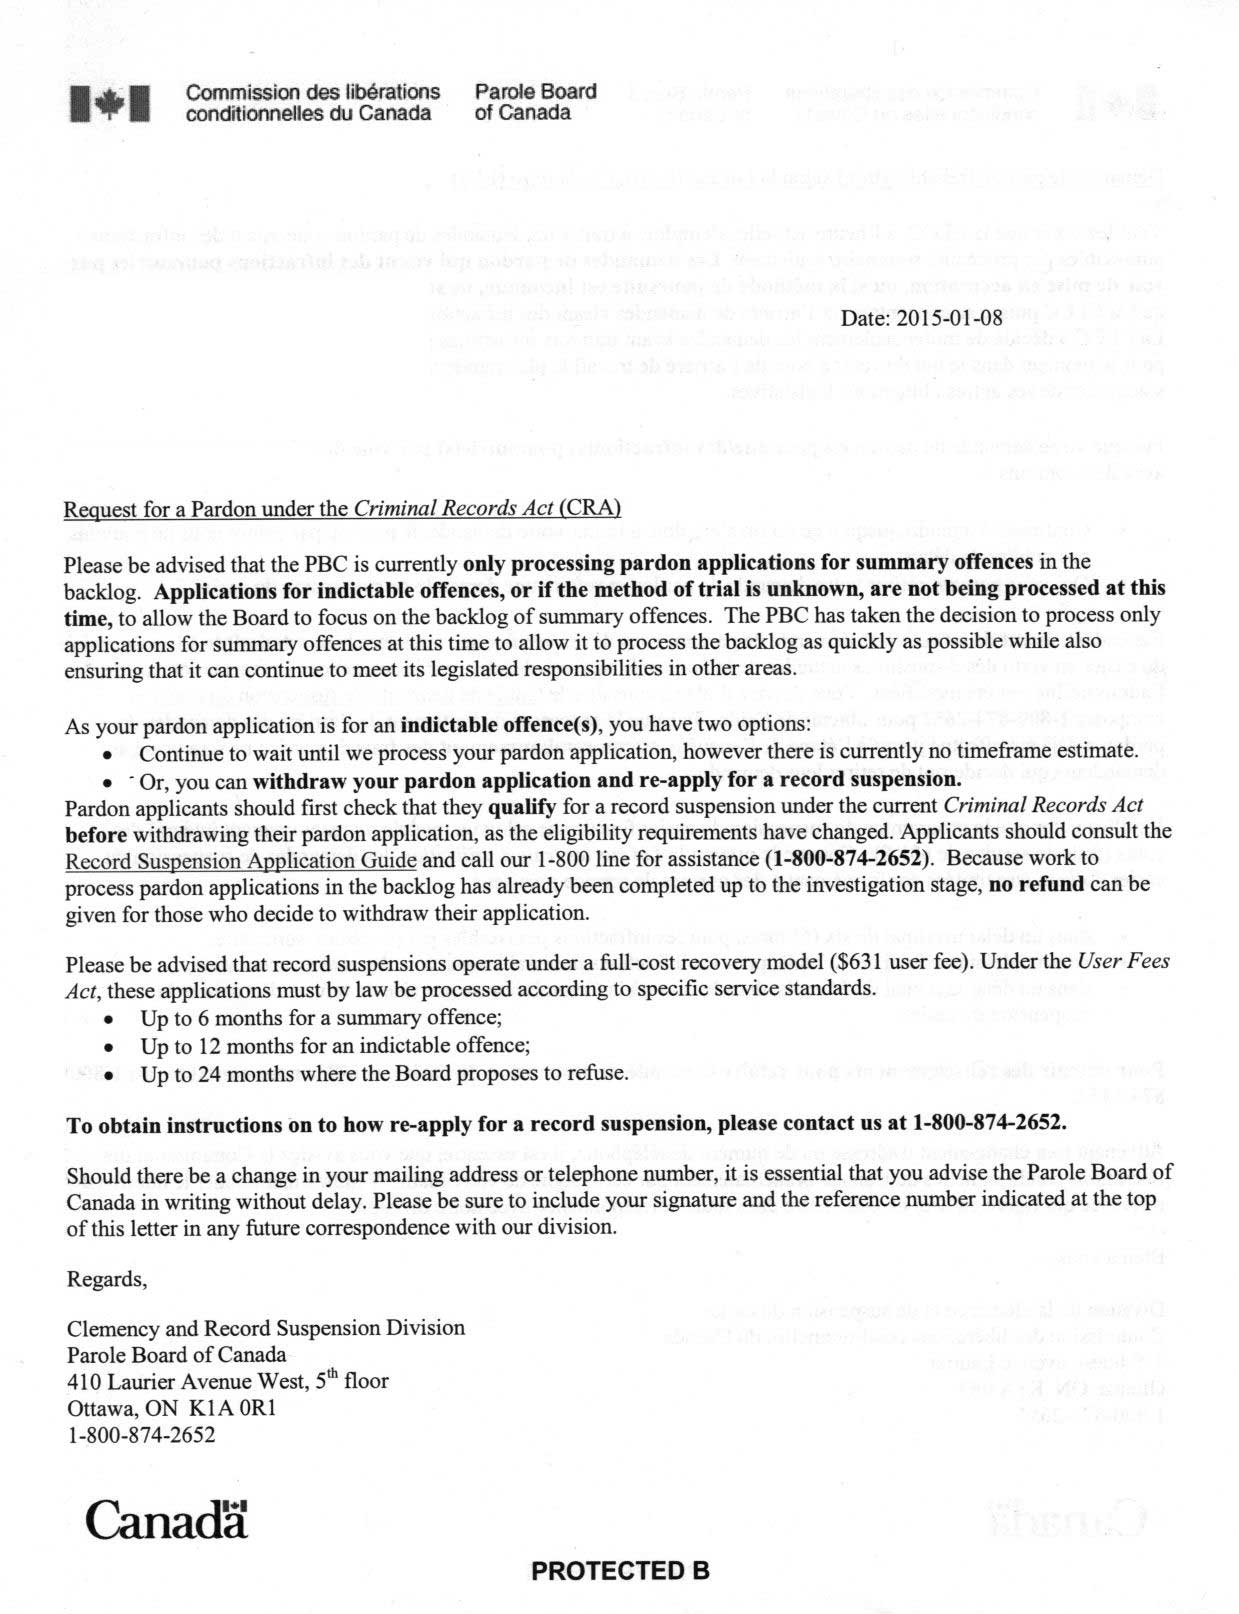 Failed Background Check Letter Template